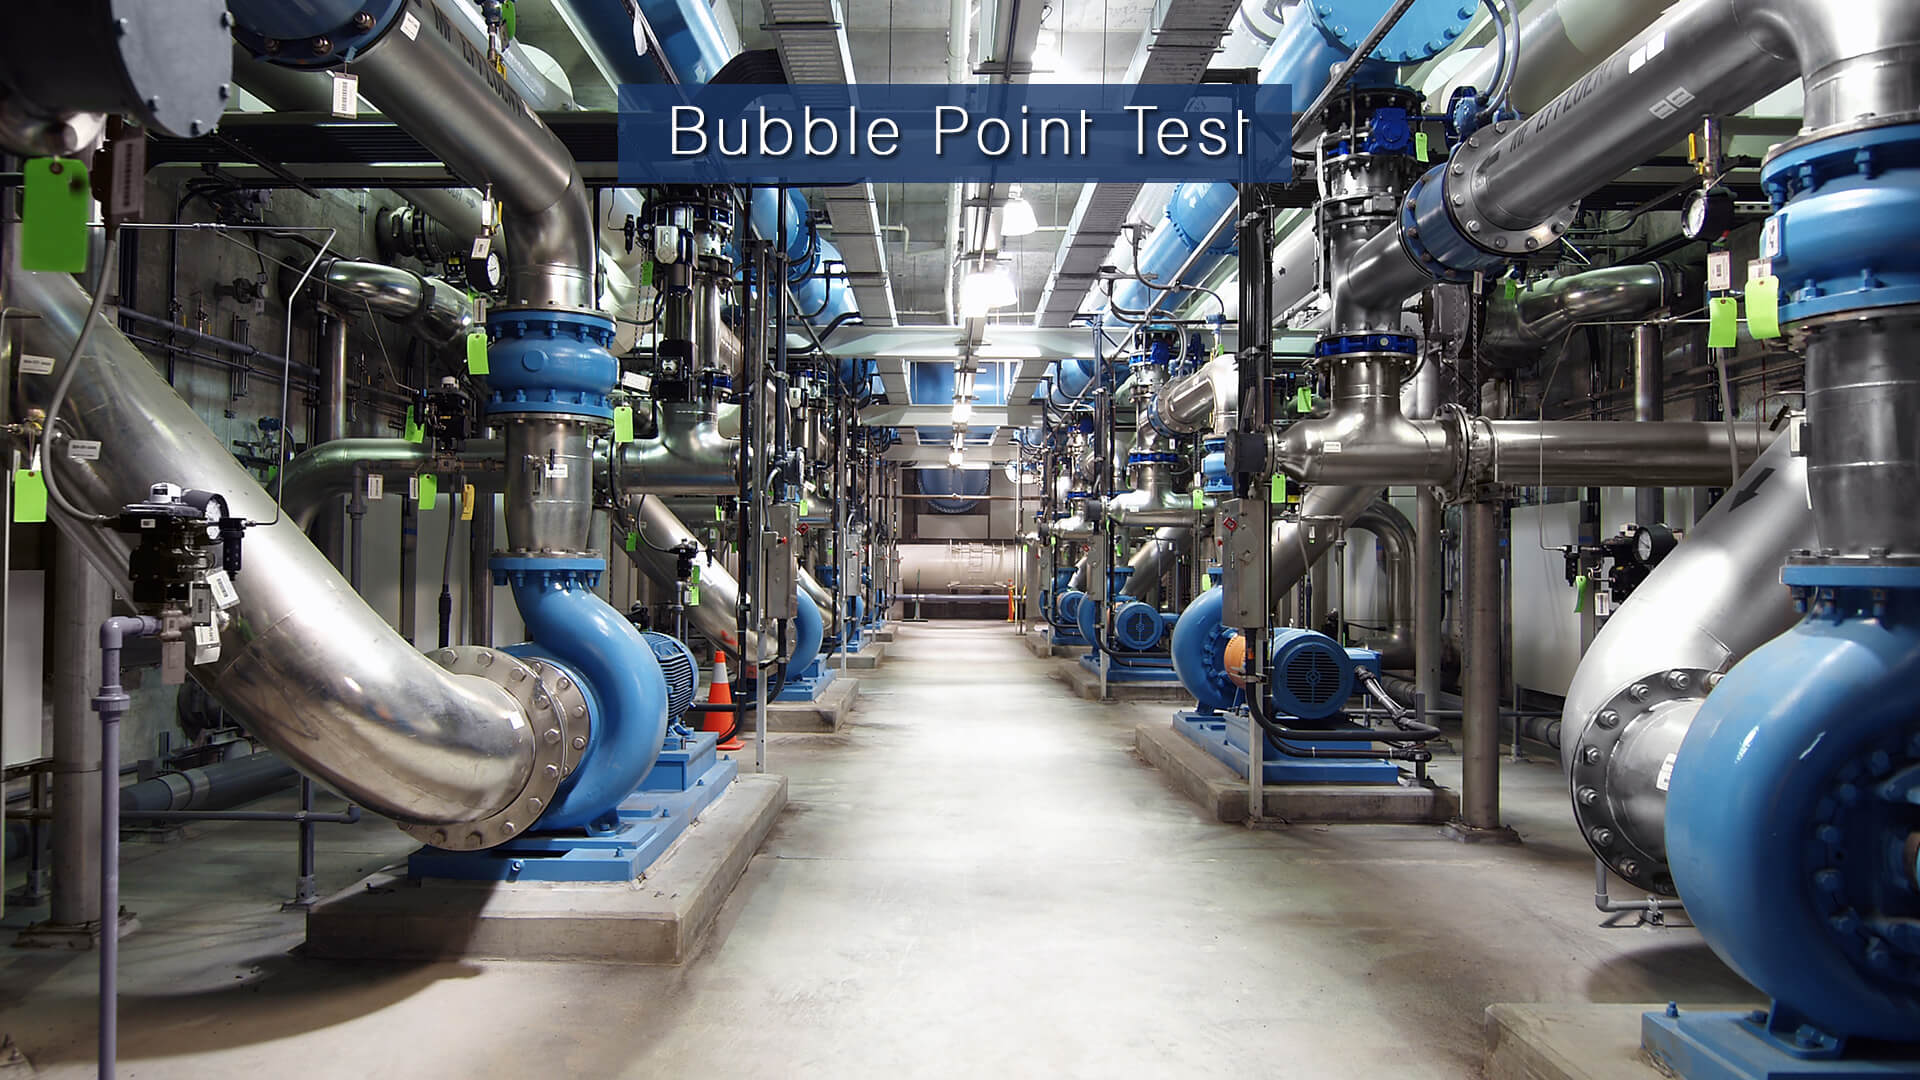 Bubble Point Test